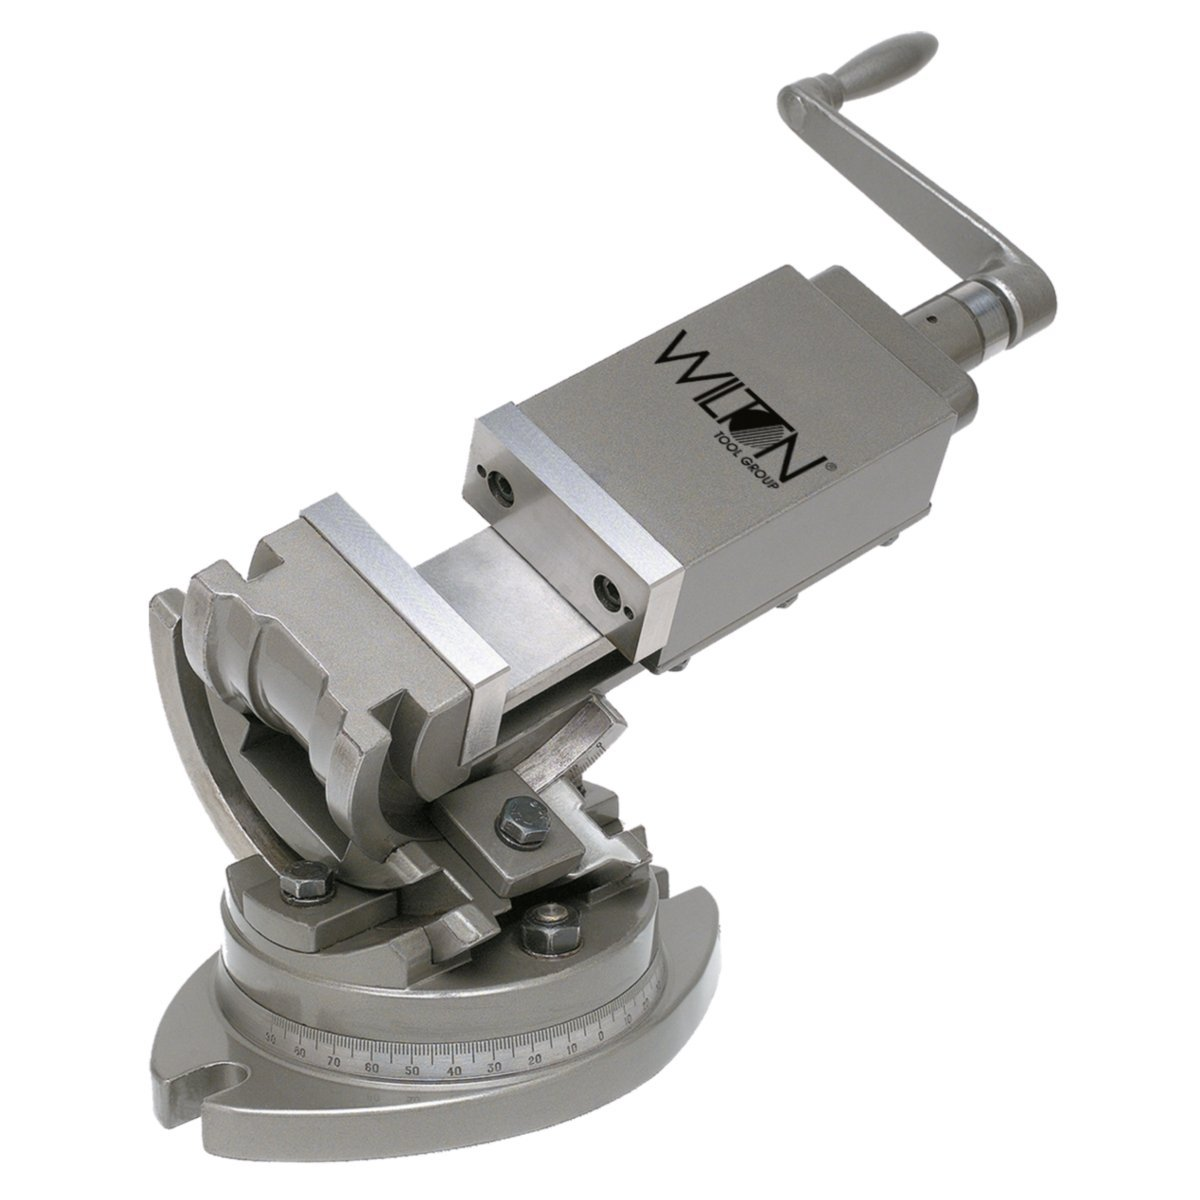 Wilton 11702 3-Axis Precision Tilting Vise 4-Inch Jaw Width, 1-1/2-Inch Jaw Depth by WILTON